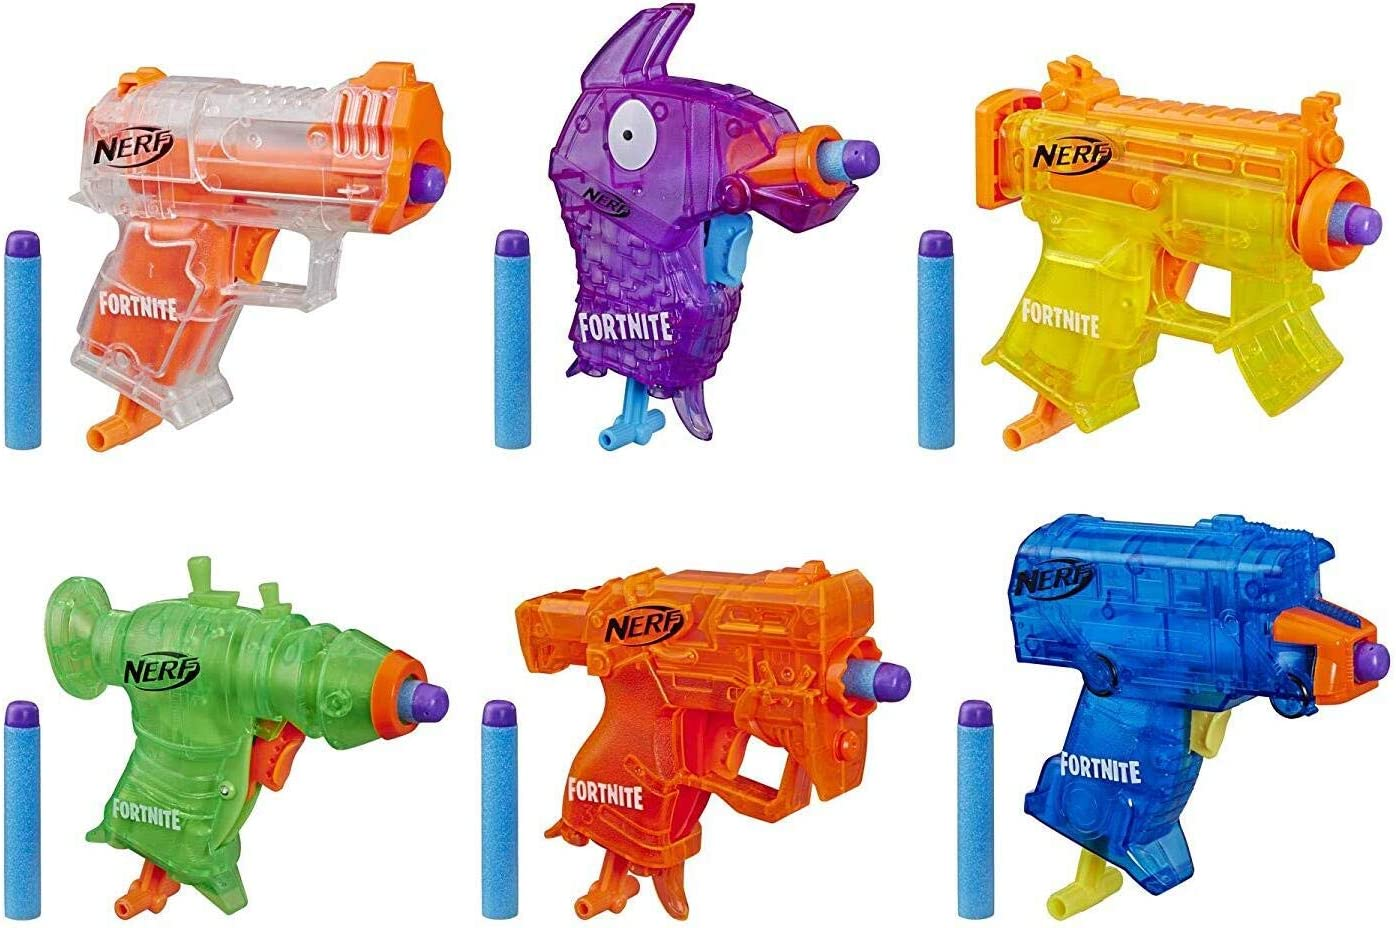 NERF Fortnite Micro Ice Storm Collection -- Includes 6 Microshots Blasters & 12 Official Elite Darts -- for Youth, Teens, Adults